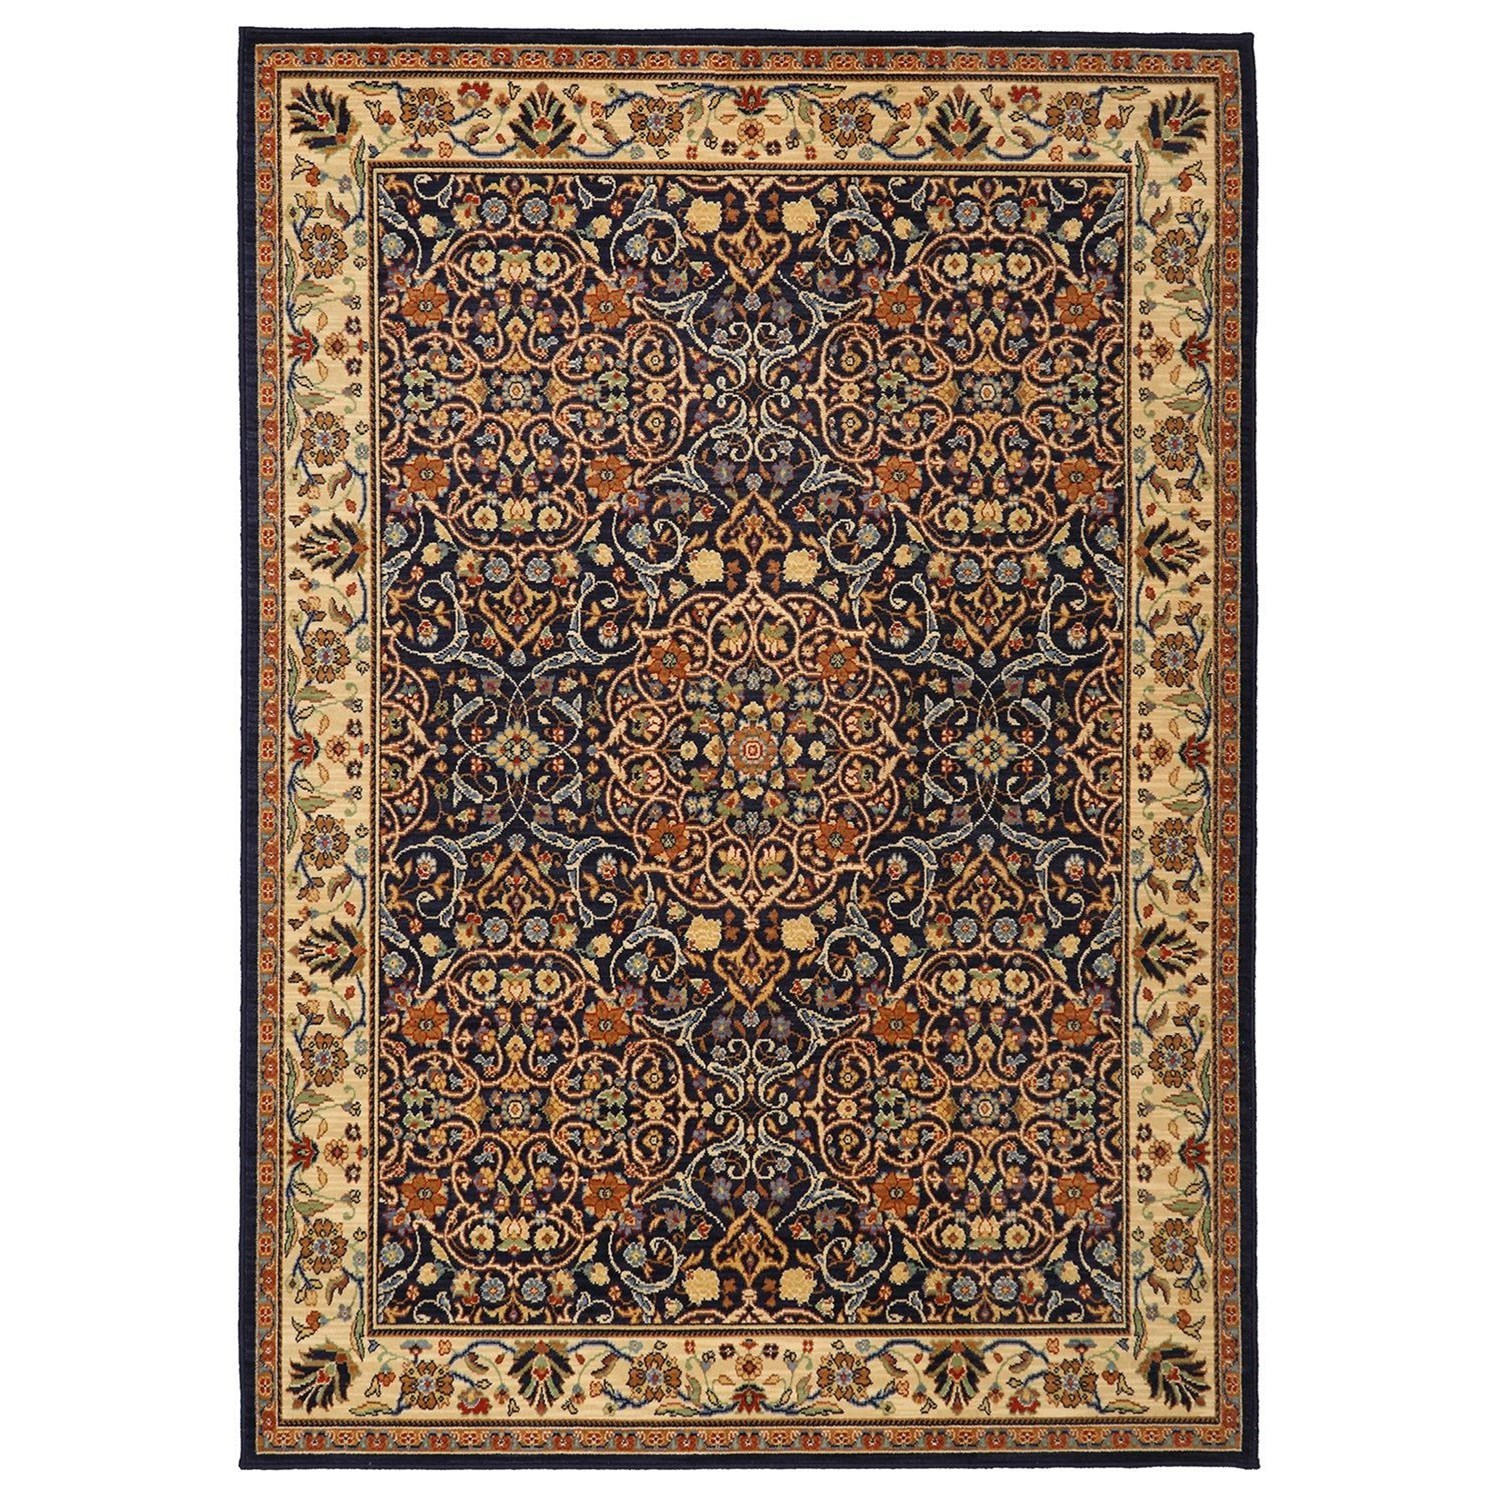 Karastan Rugs English Manor 2'6x8' Sutton Rug Runner - Item Number: 02120 00603 030096